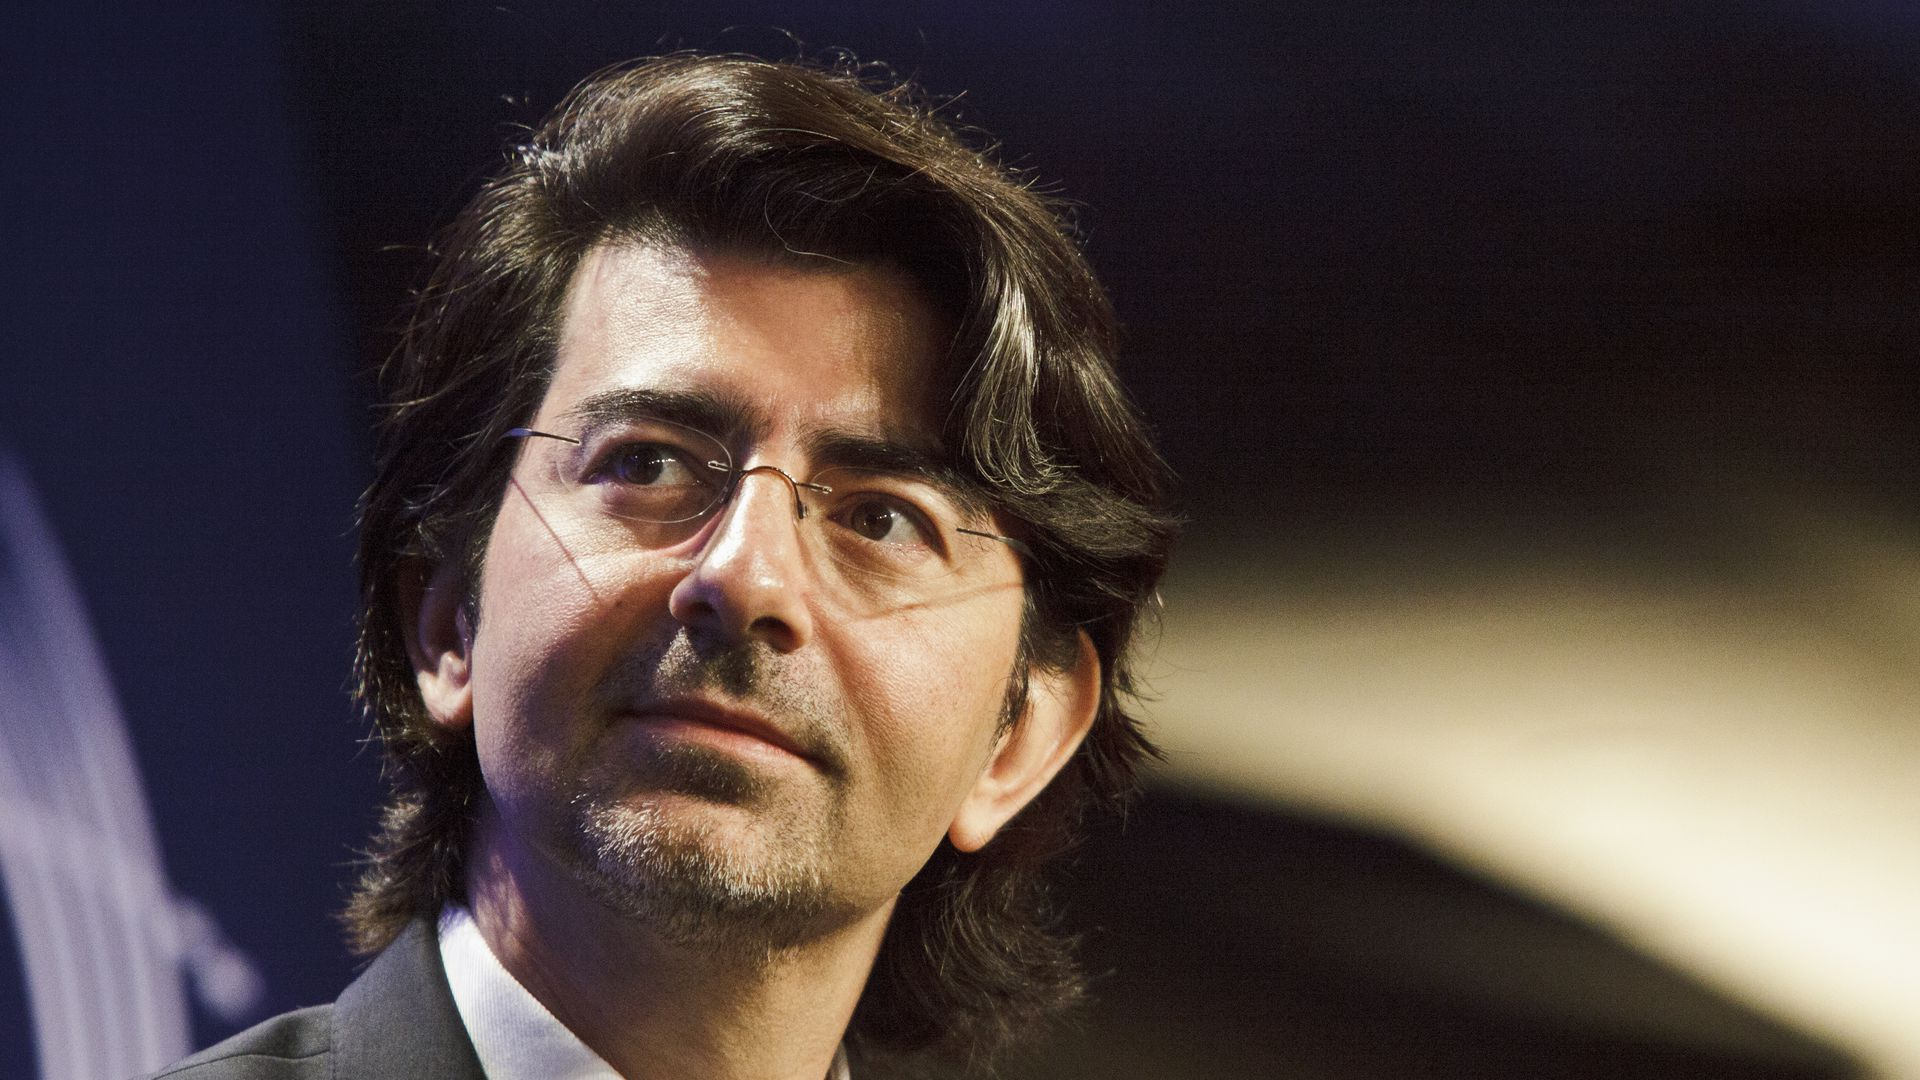 eBay founder Pierre Omidyar gazes into the distance